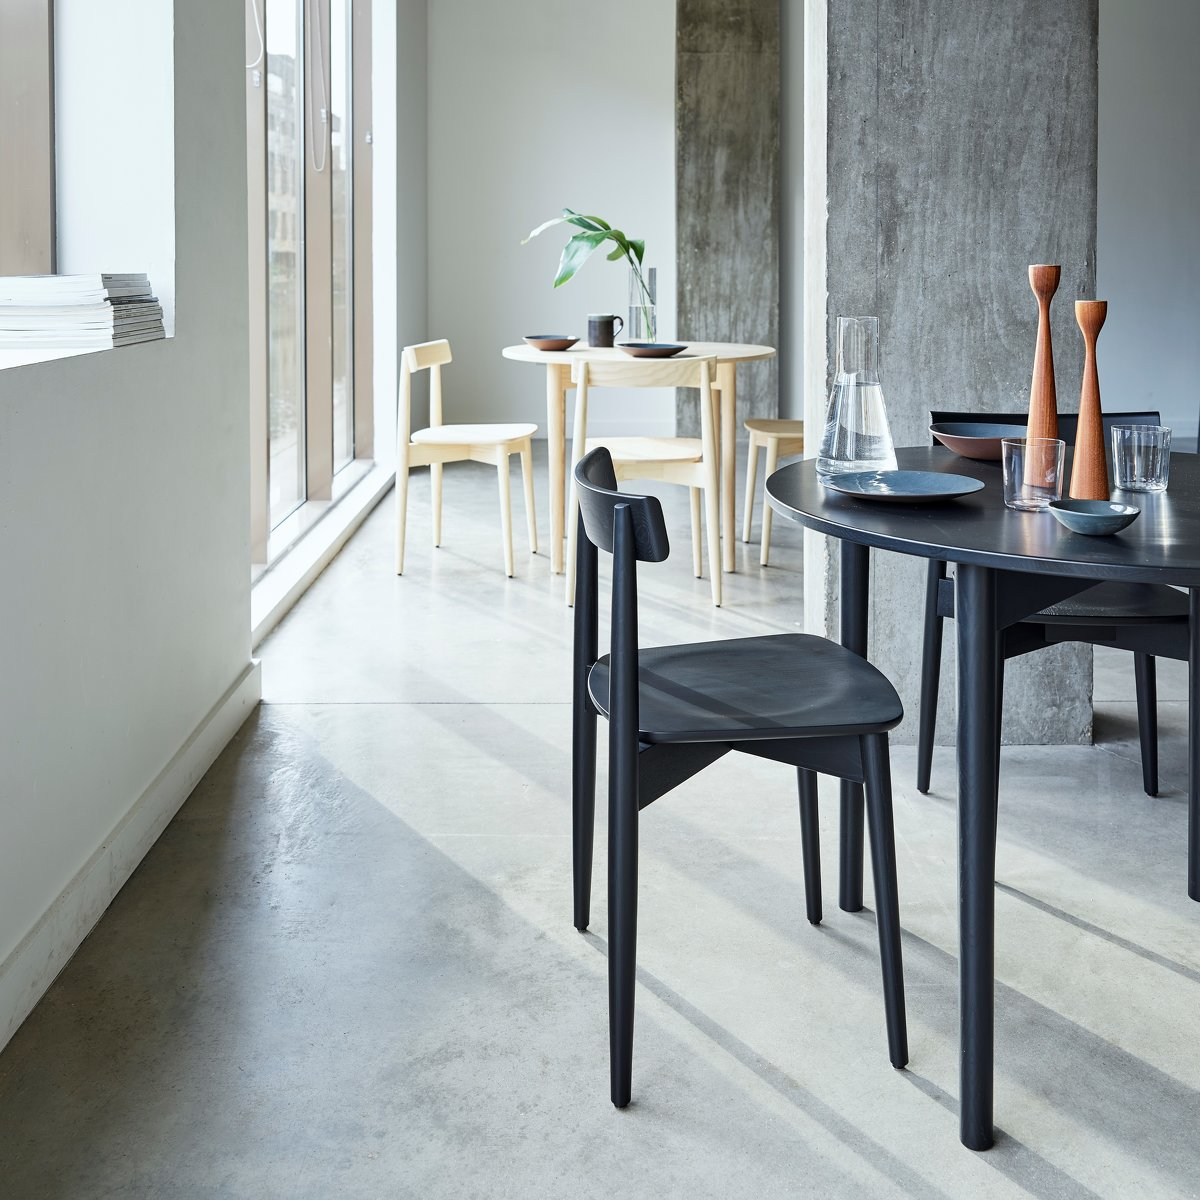 Lara Chairs and Luca Tables.